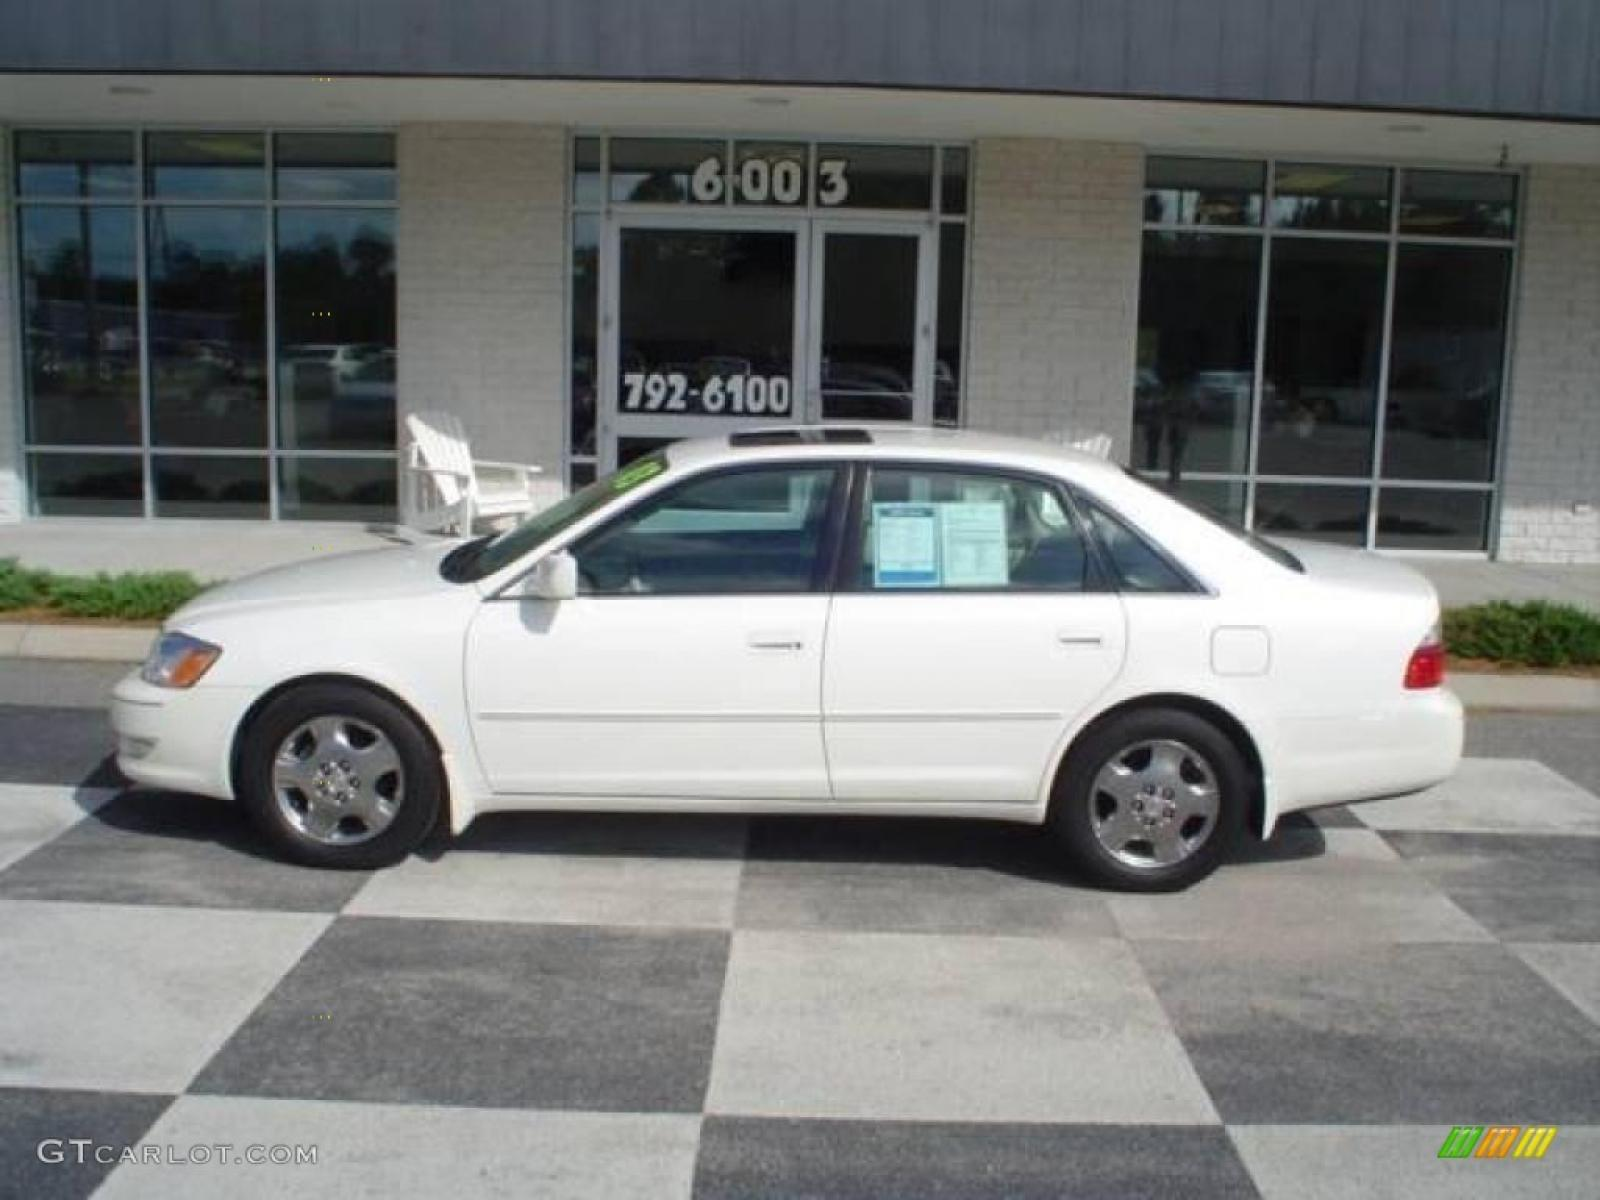 Beautiful 2003 Toyota Avalon #1 800 1024 1280 1600 Origin